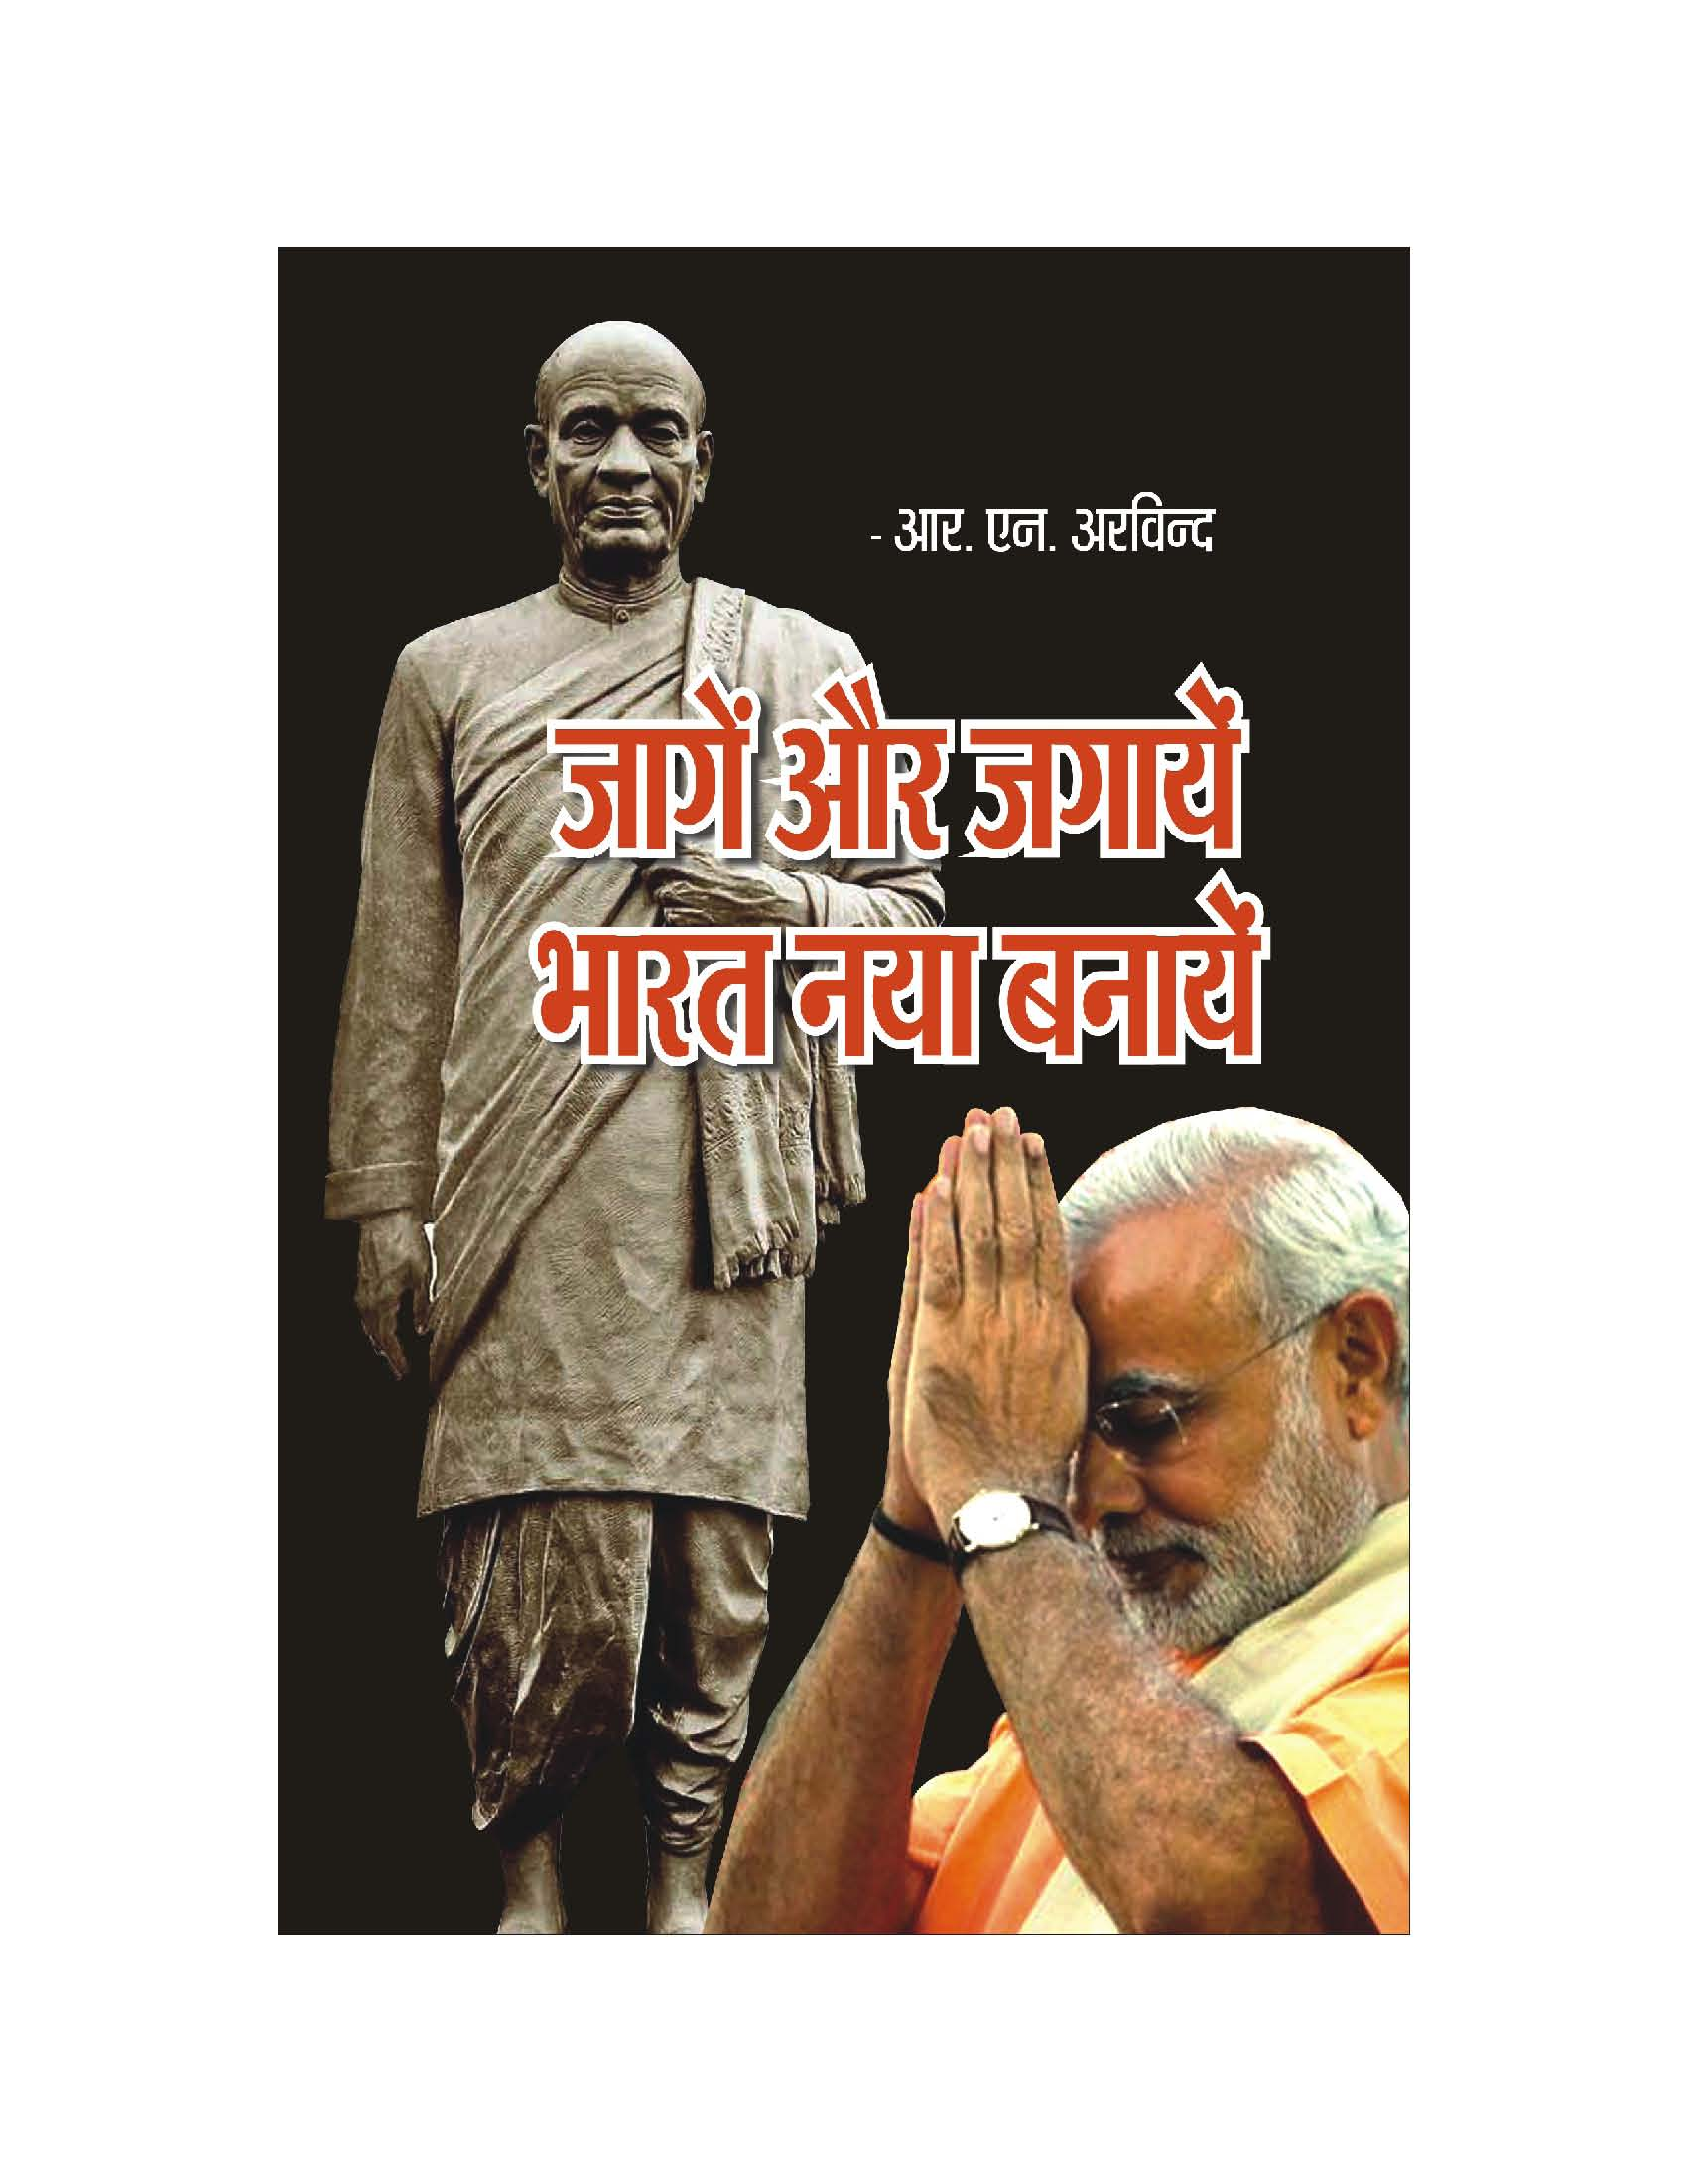 जागें और जगाएं भारत नया बनायें A book on how change is needed in India and how the then Gujarat CM Narendra Modi could bring that much-needed change in India.